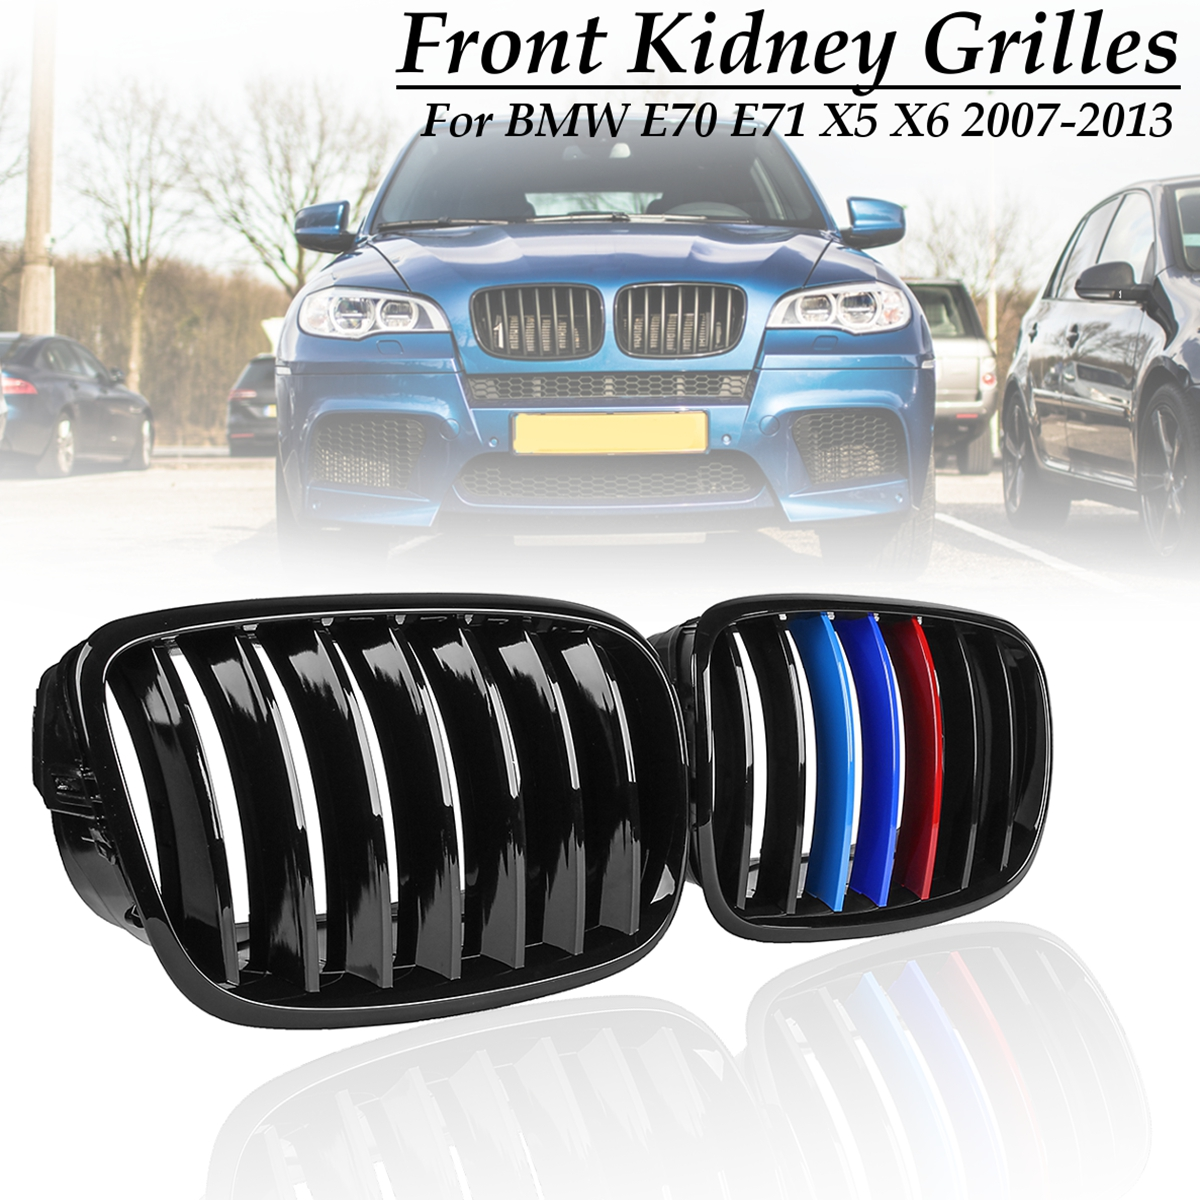 Slat Front Kidney Grill Grilles for Gloss Black M-Color for BMW E70 E71 X5 X6 2007 2008 2009 2010 2011 2012 2013 1pair matte black double slat kidney grille front grill for bmw e70 e71 model x5 x6 suv m sport xdrive 2008 2012 car styling